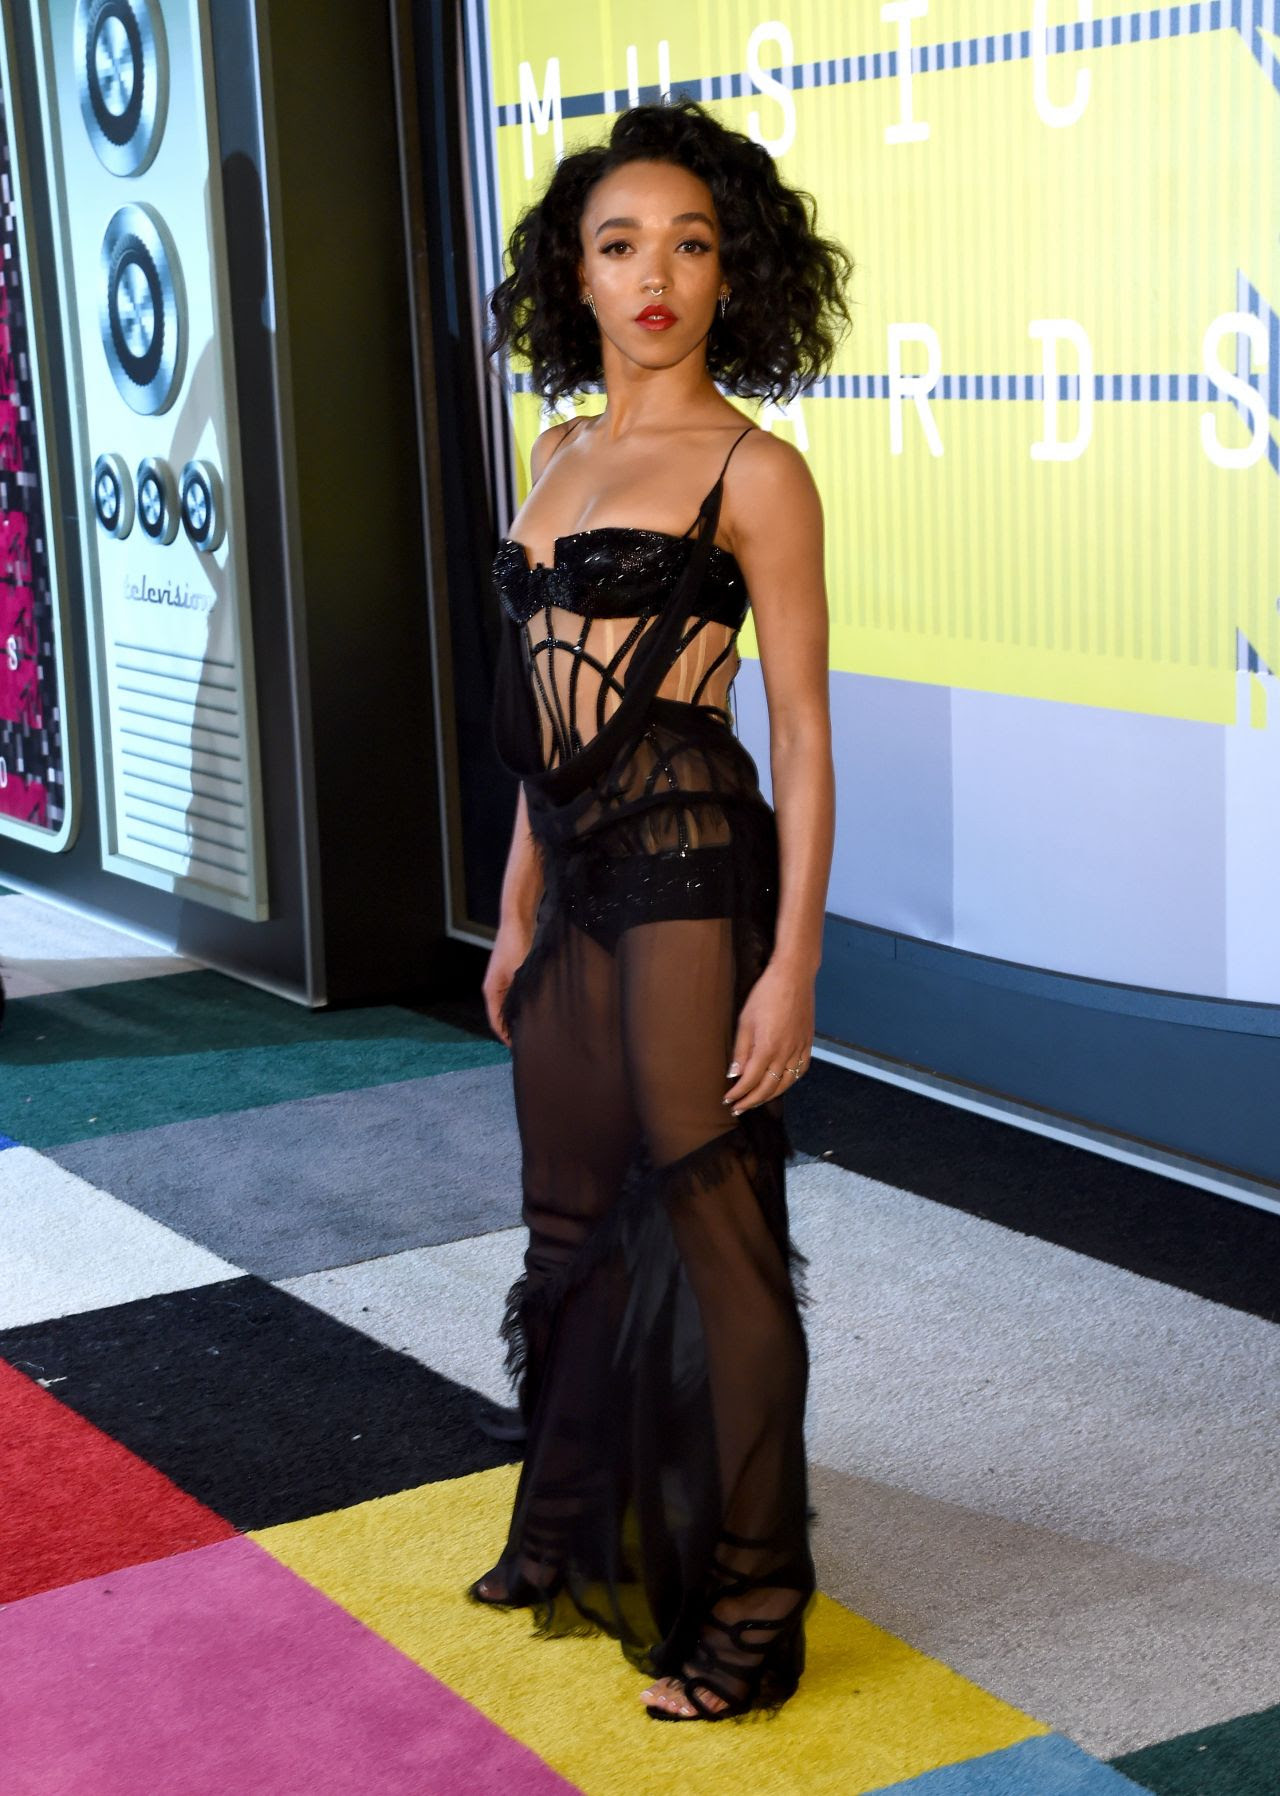 http://celebmafia.com/wp-content/uploads/2015/08/fka-twigs-2015-mtv-video-music-awards-at-microsoft-theater-in-los-angeles_10.jpg